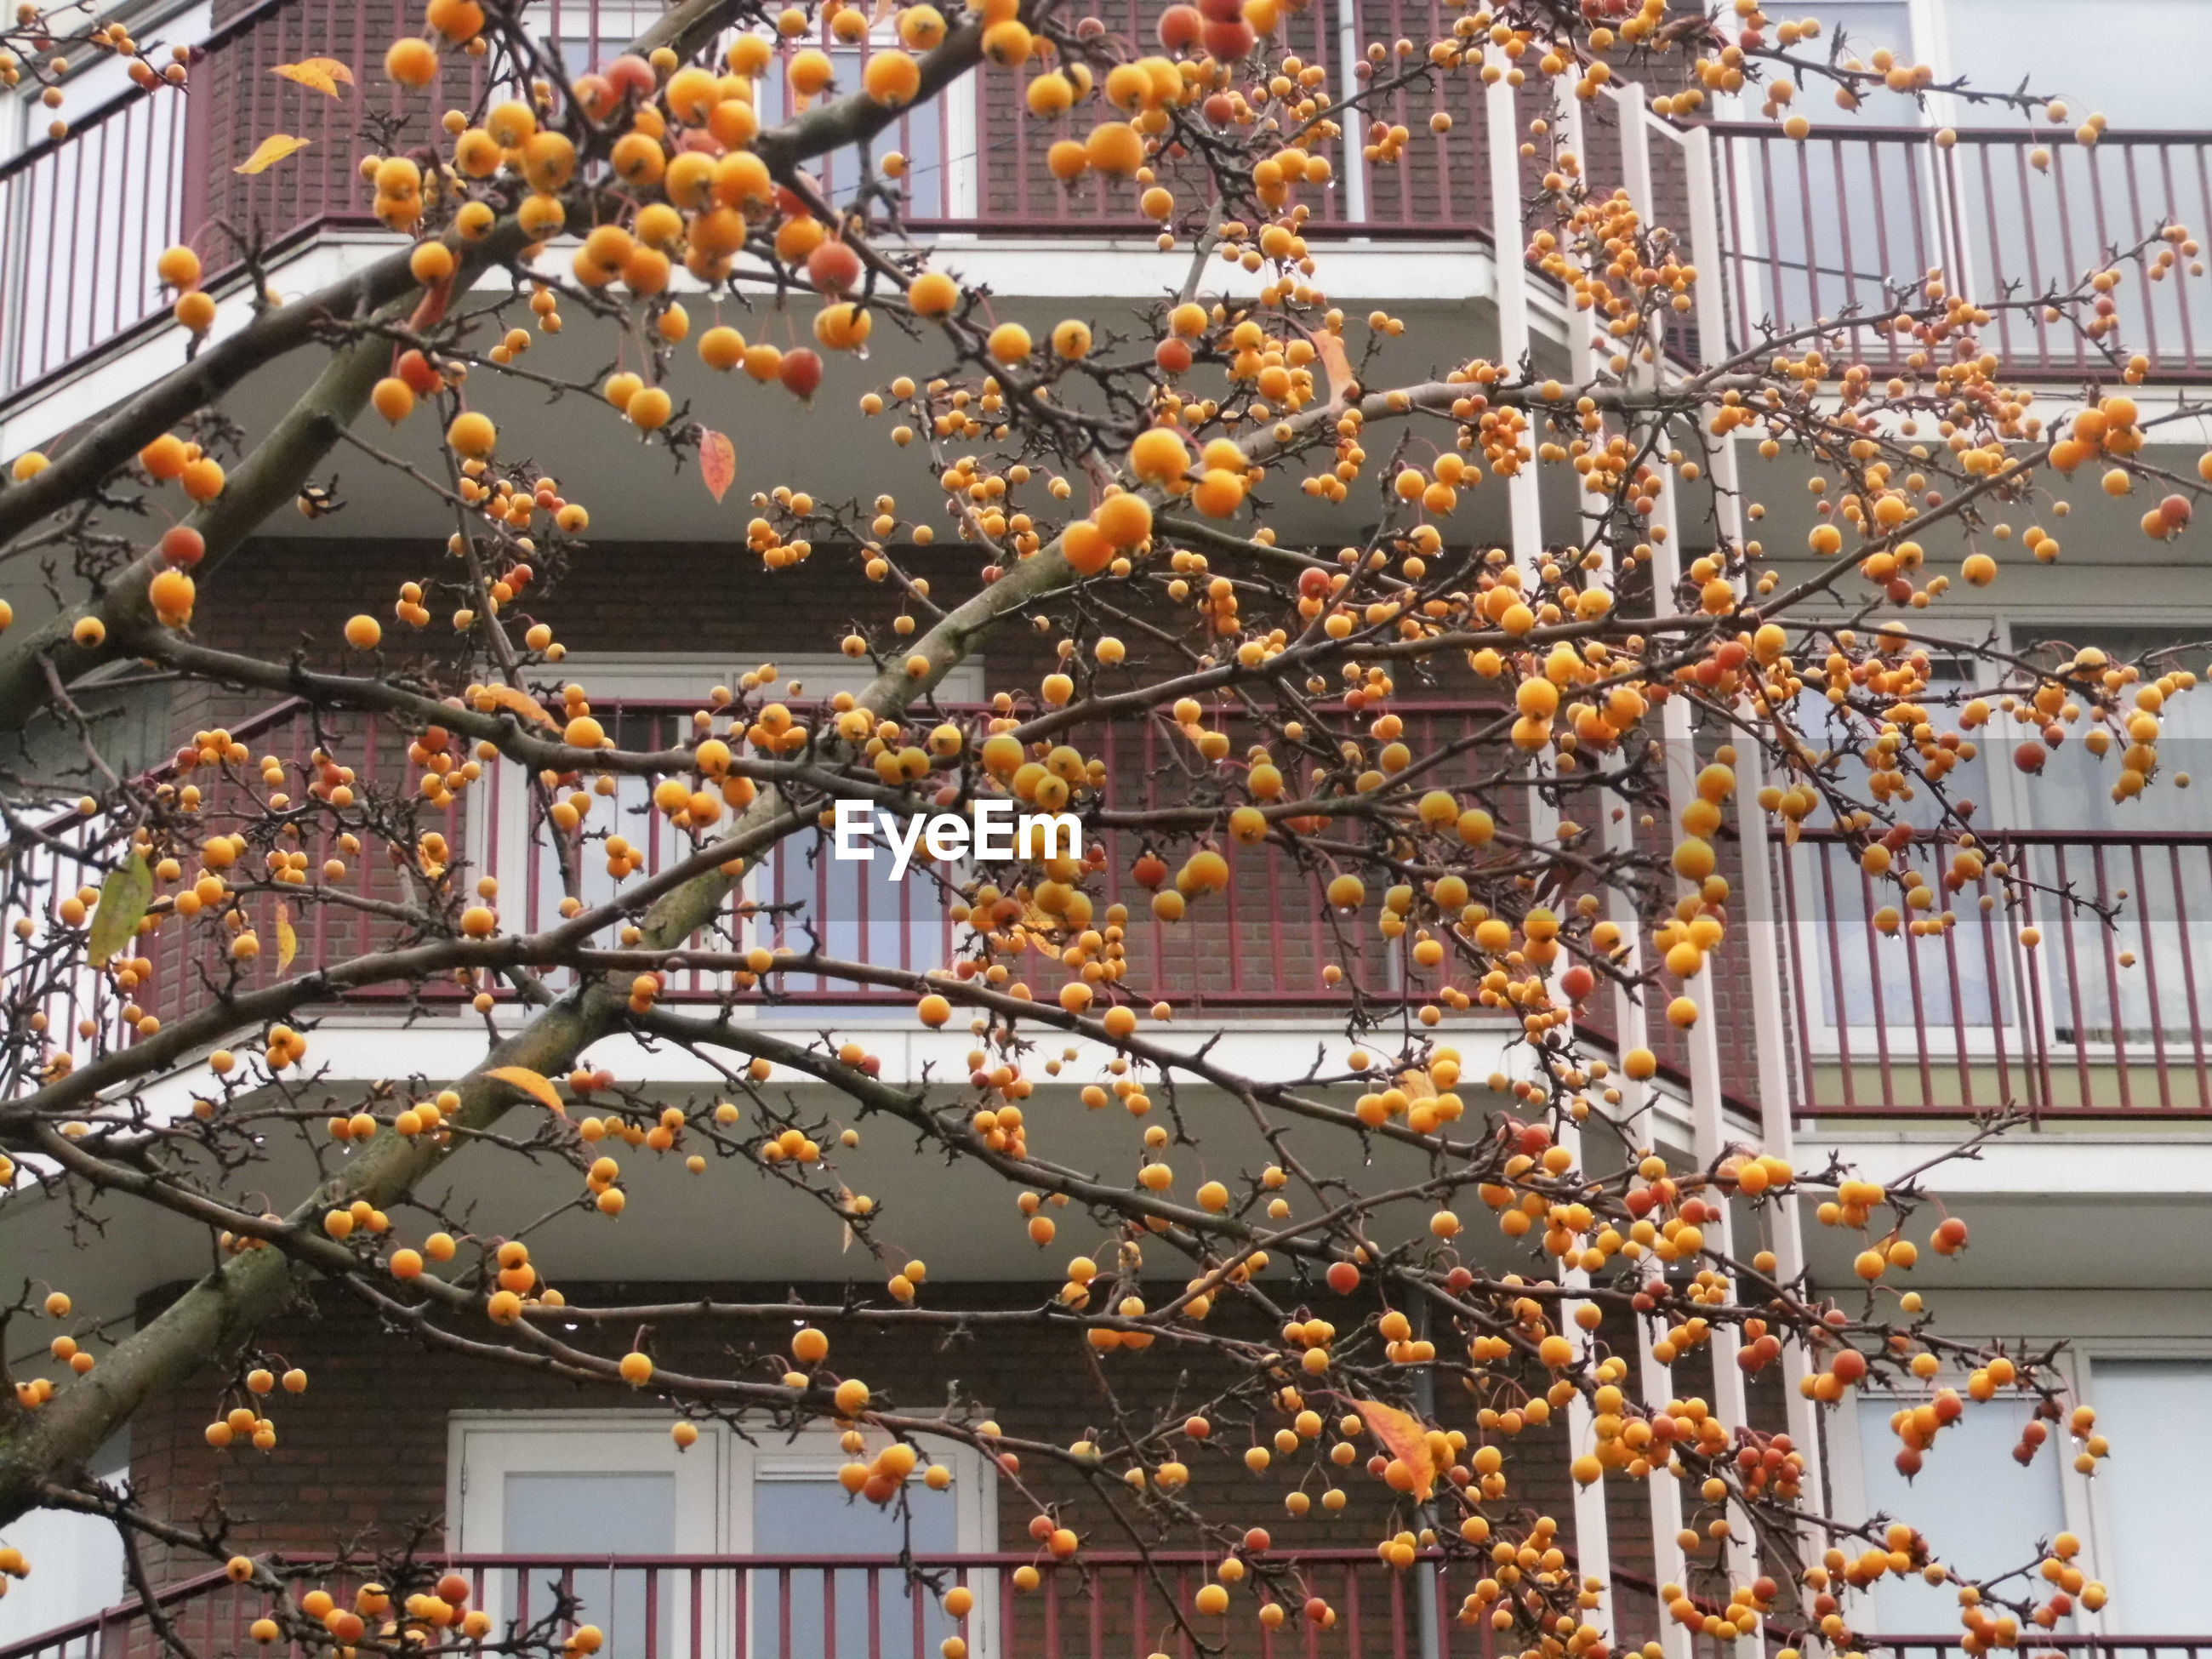 Yellow fruits hanging from branches against building